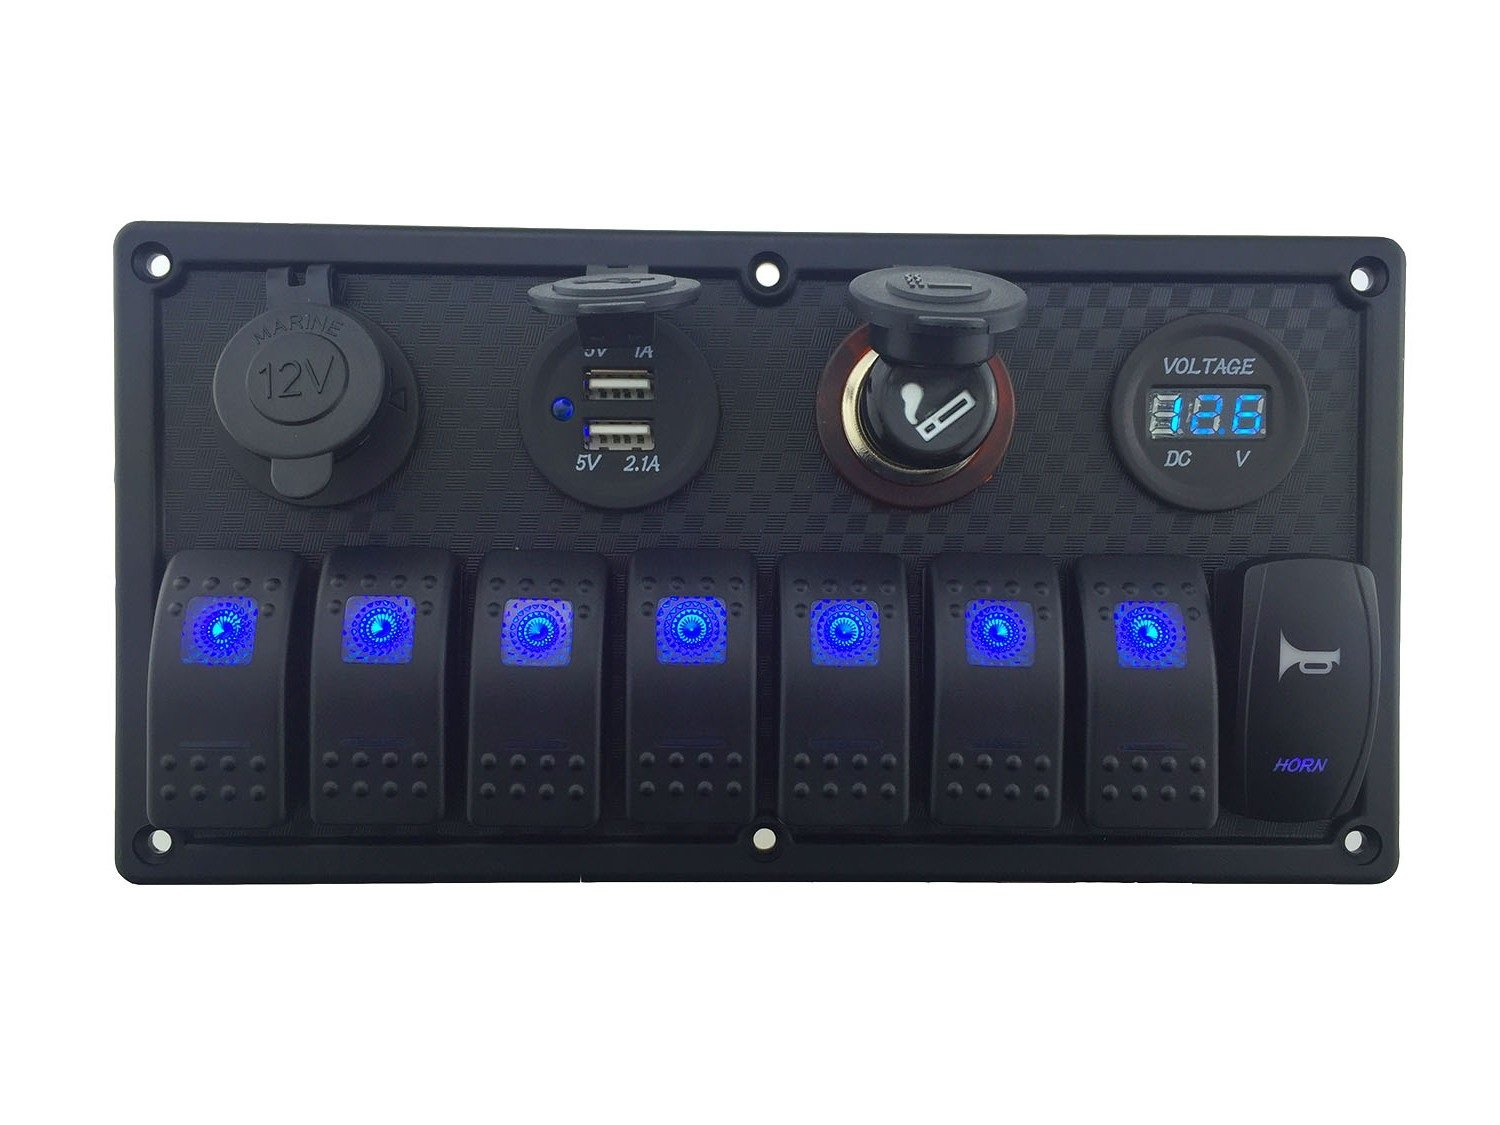 IZTOSS 12V-24V DC 8 Gang Waterproof Marine Blue led Switch Panel with Double led Power Socket Cigarette Lighter Horn Switch and 4.2A USB Voltmeter by IZTOSS